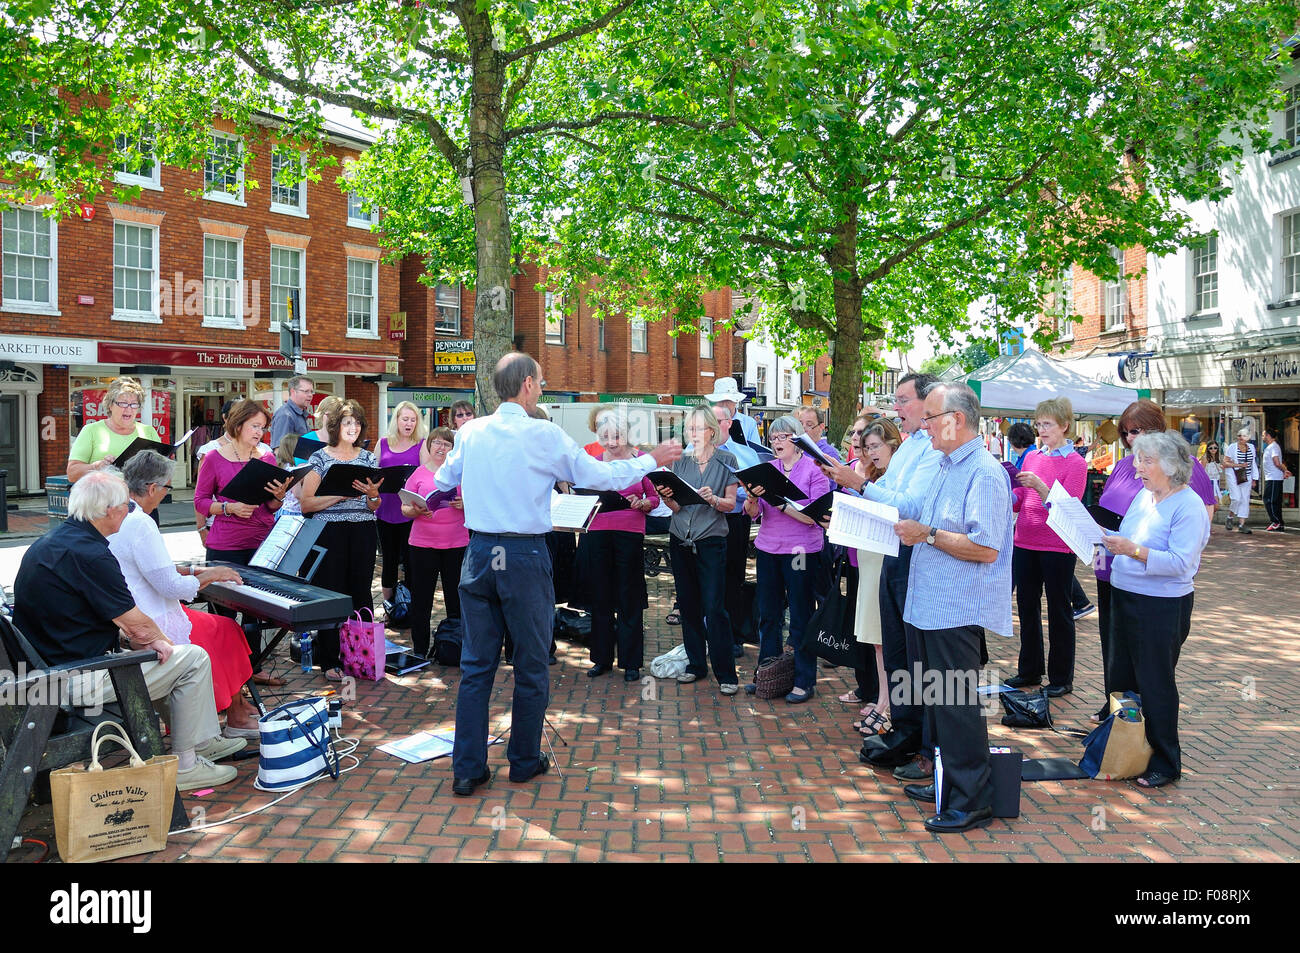 Local choir singing in Market Place, Wokingham, Berkshire, England, United Kingdom - Stock Image